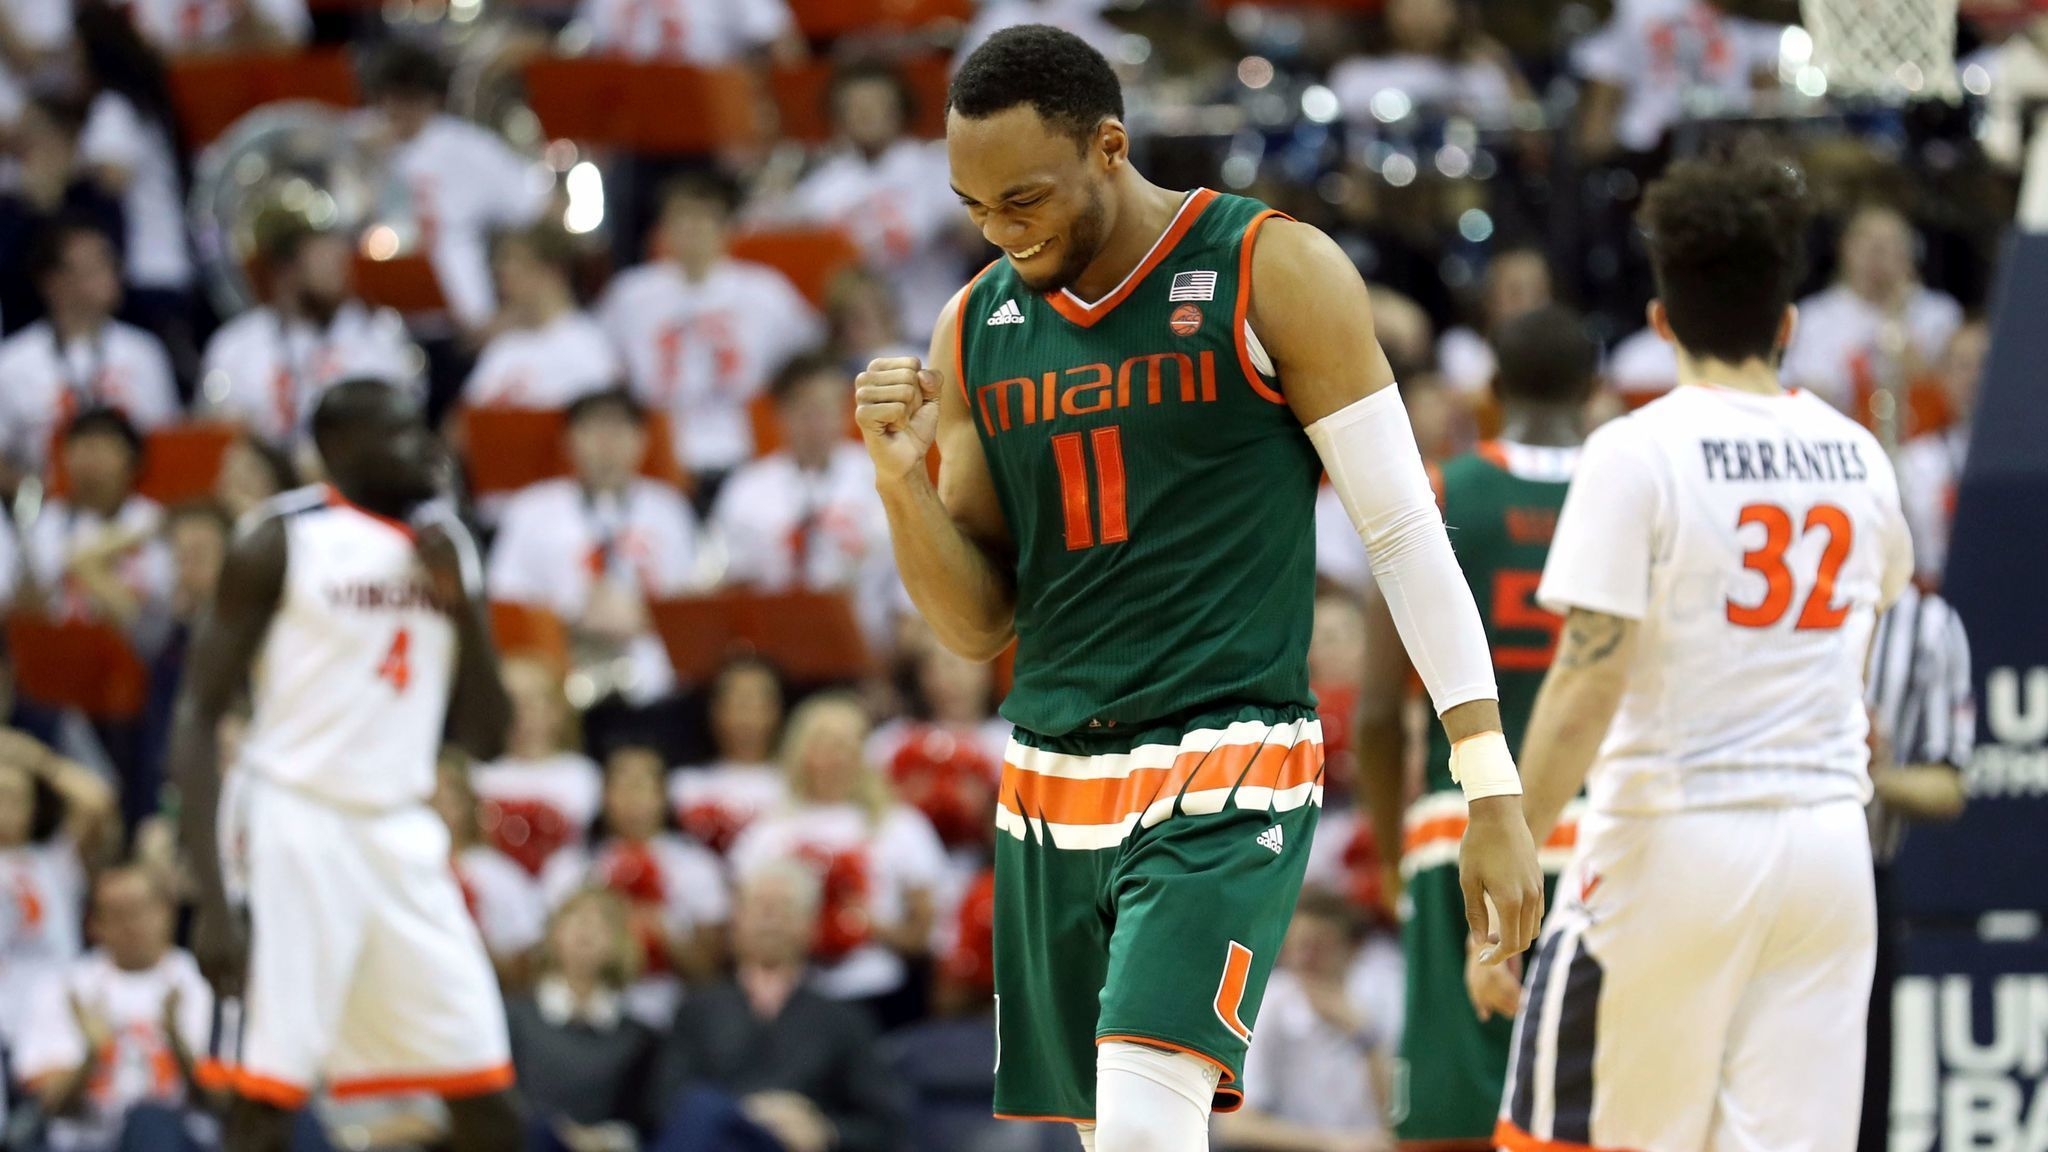 new concept cdfea a6aa7 Hurricanes men's basketball team ranked 12th in preseason ...